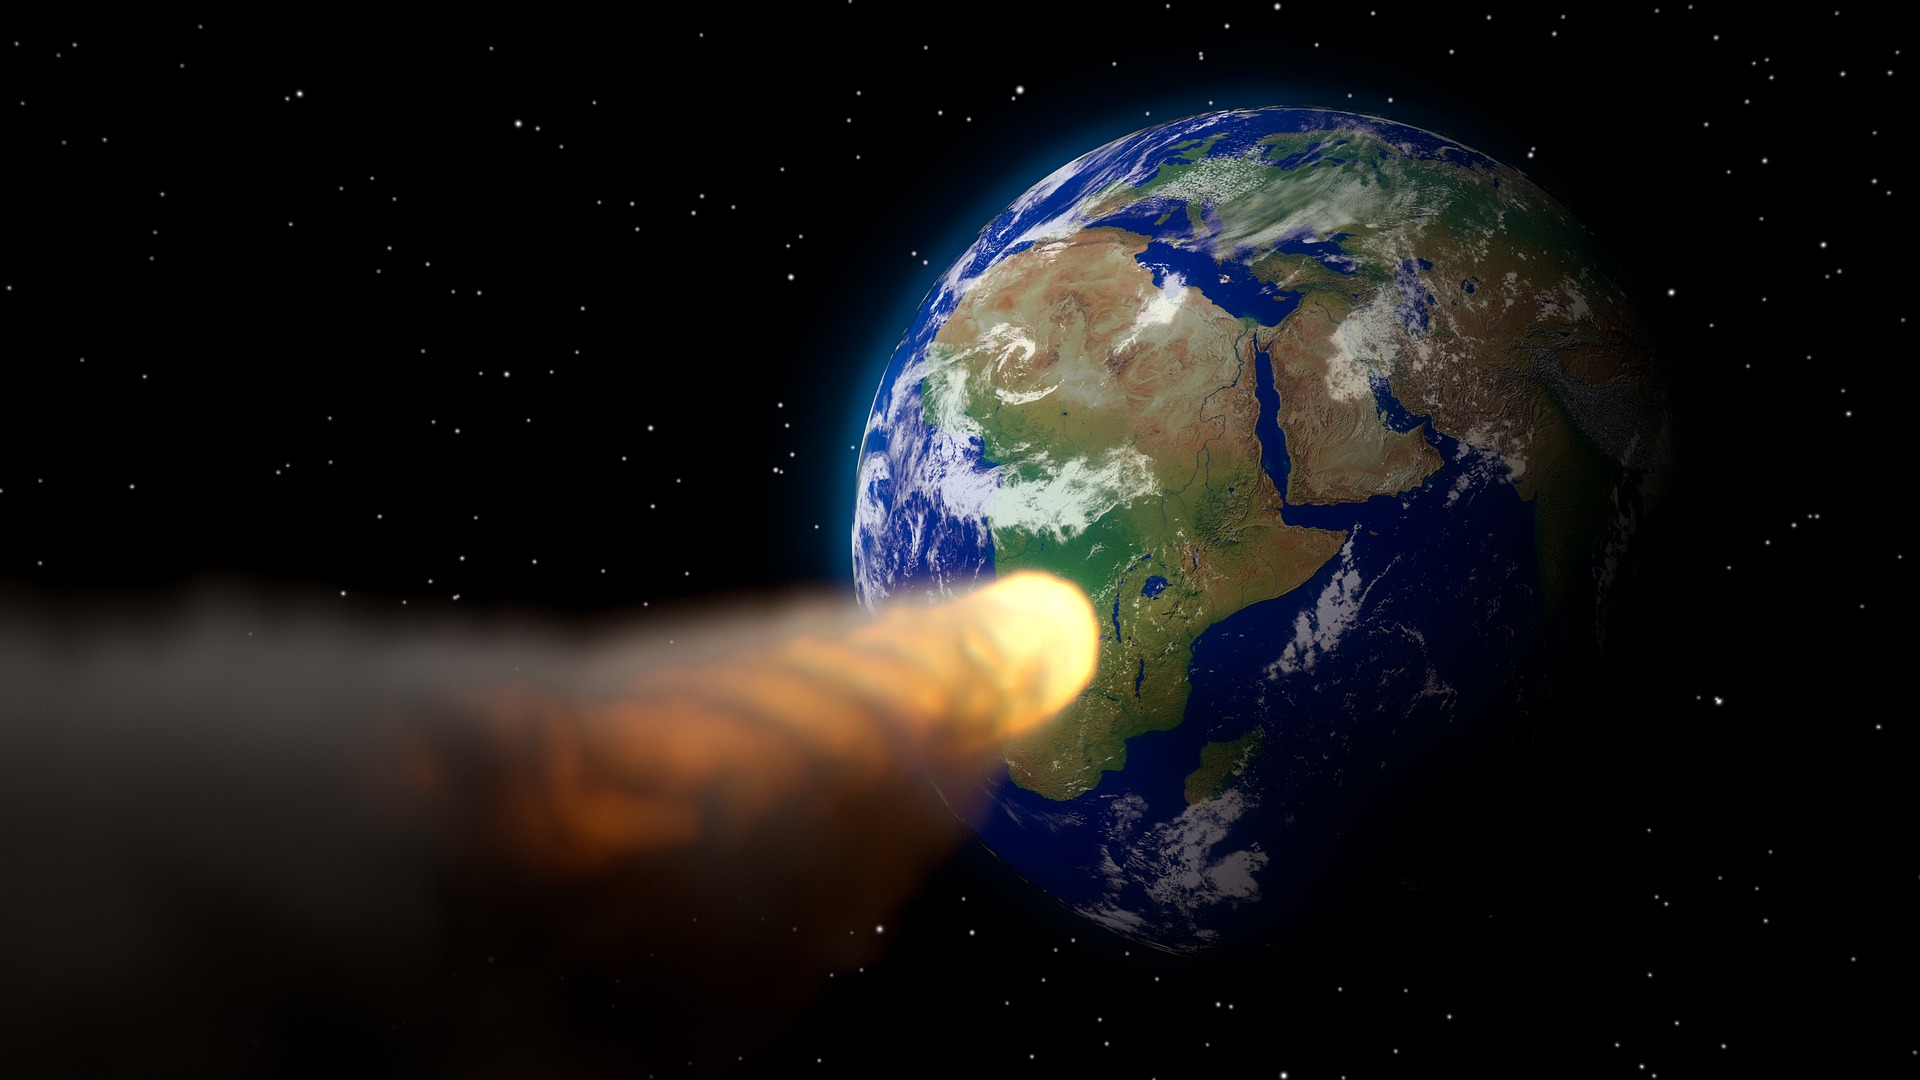 how many asteroids are on a potential collision course with earth?